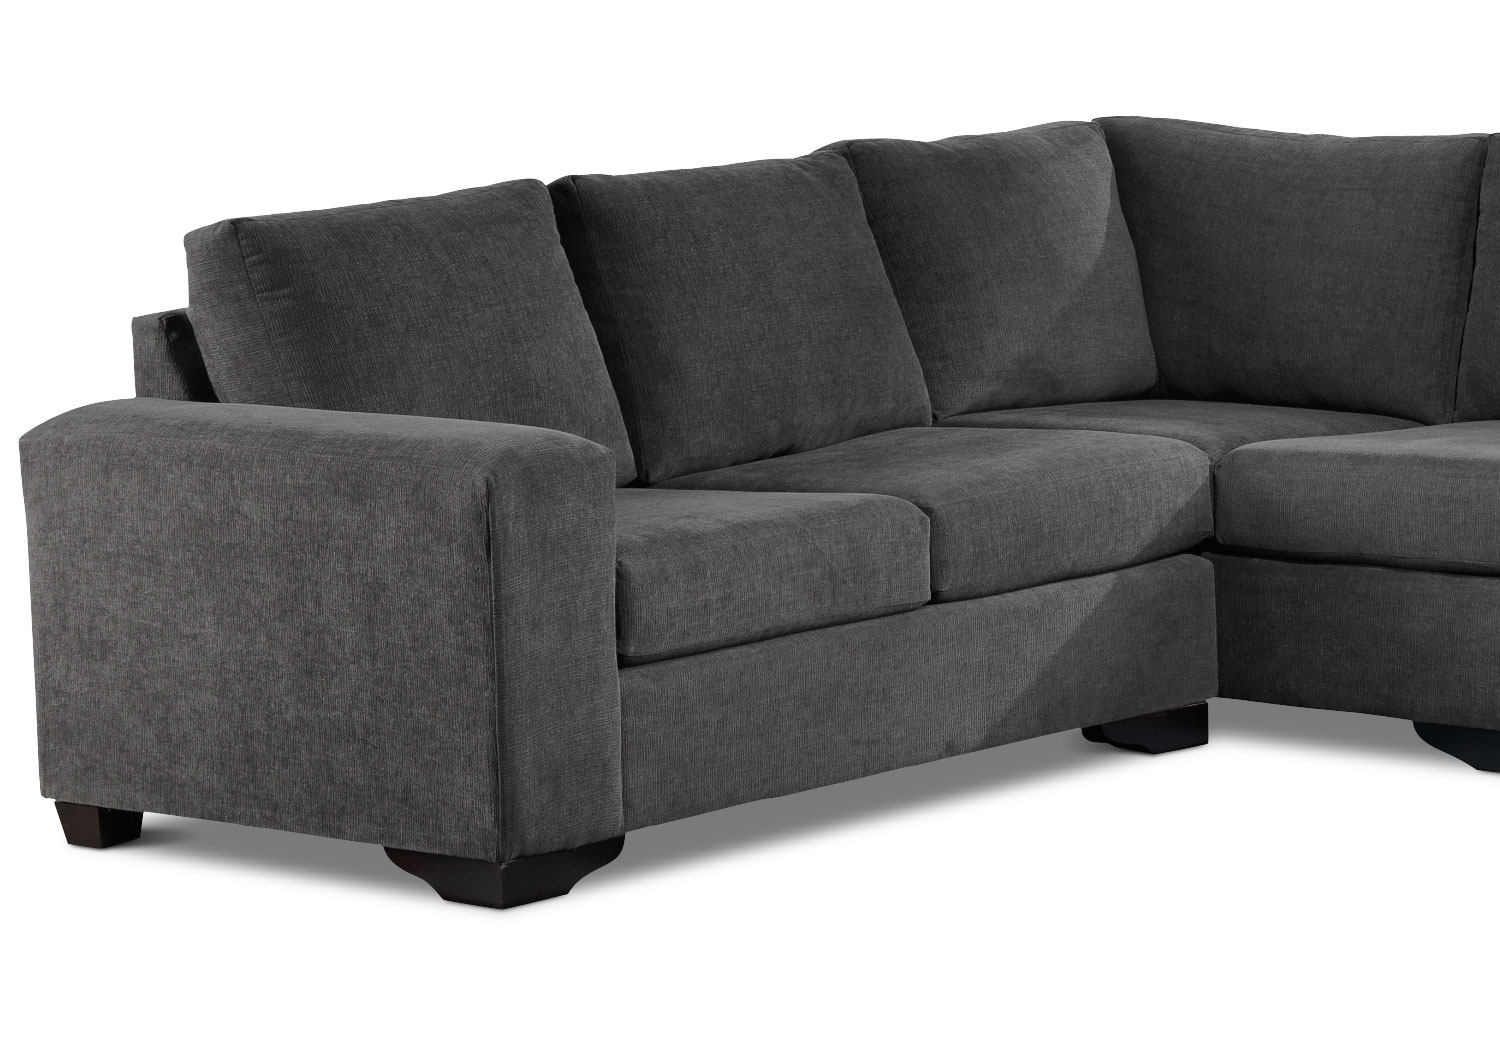 3 sectional furniture ca